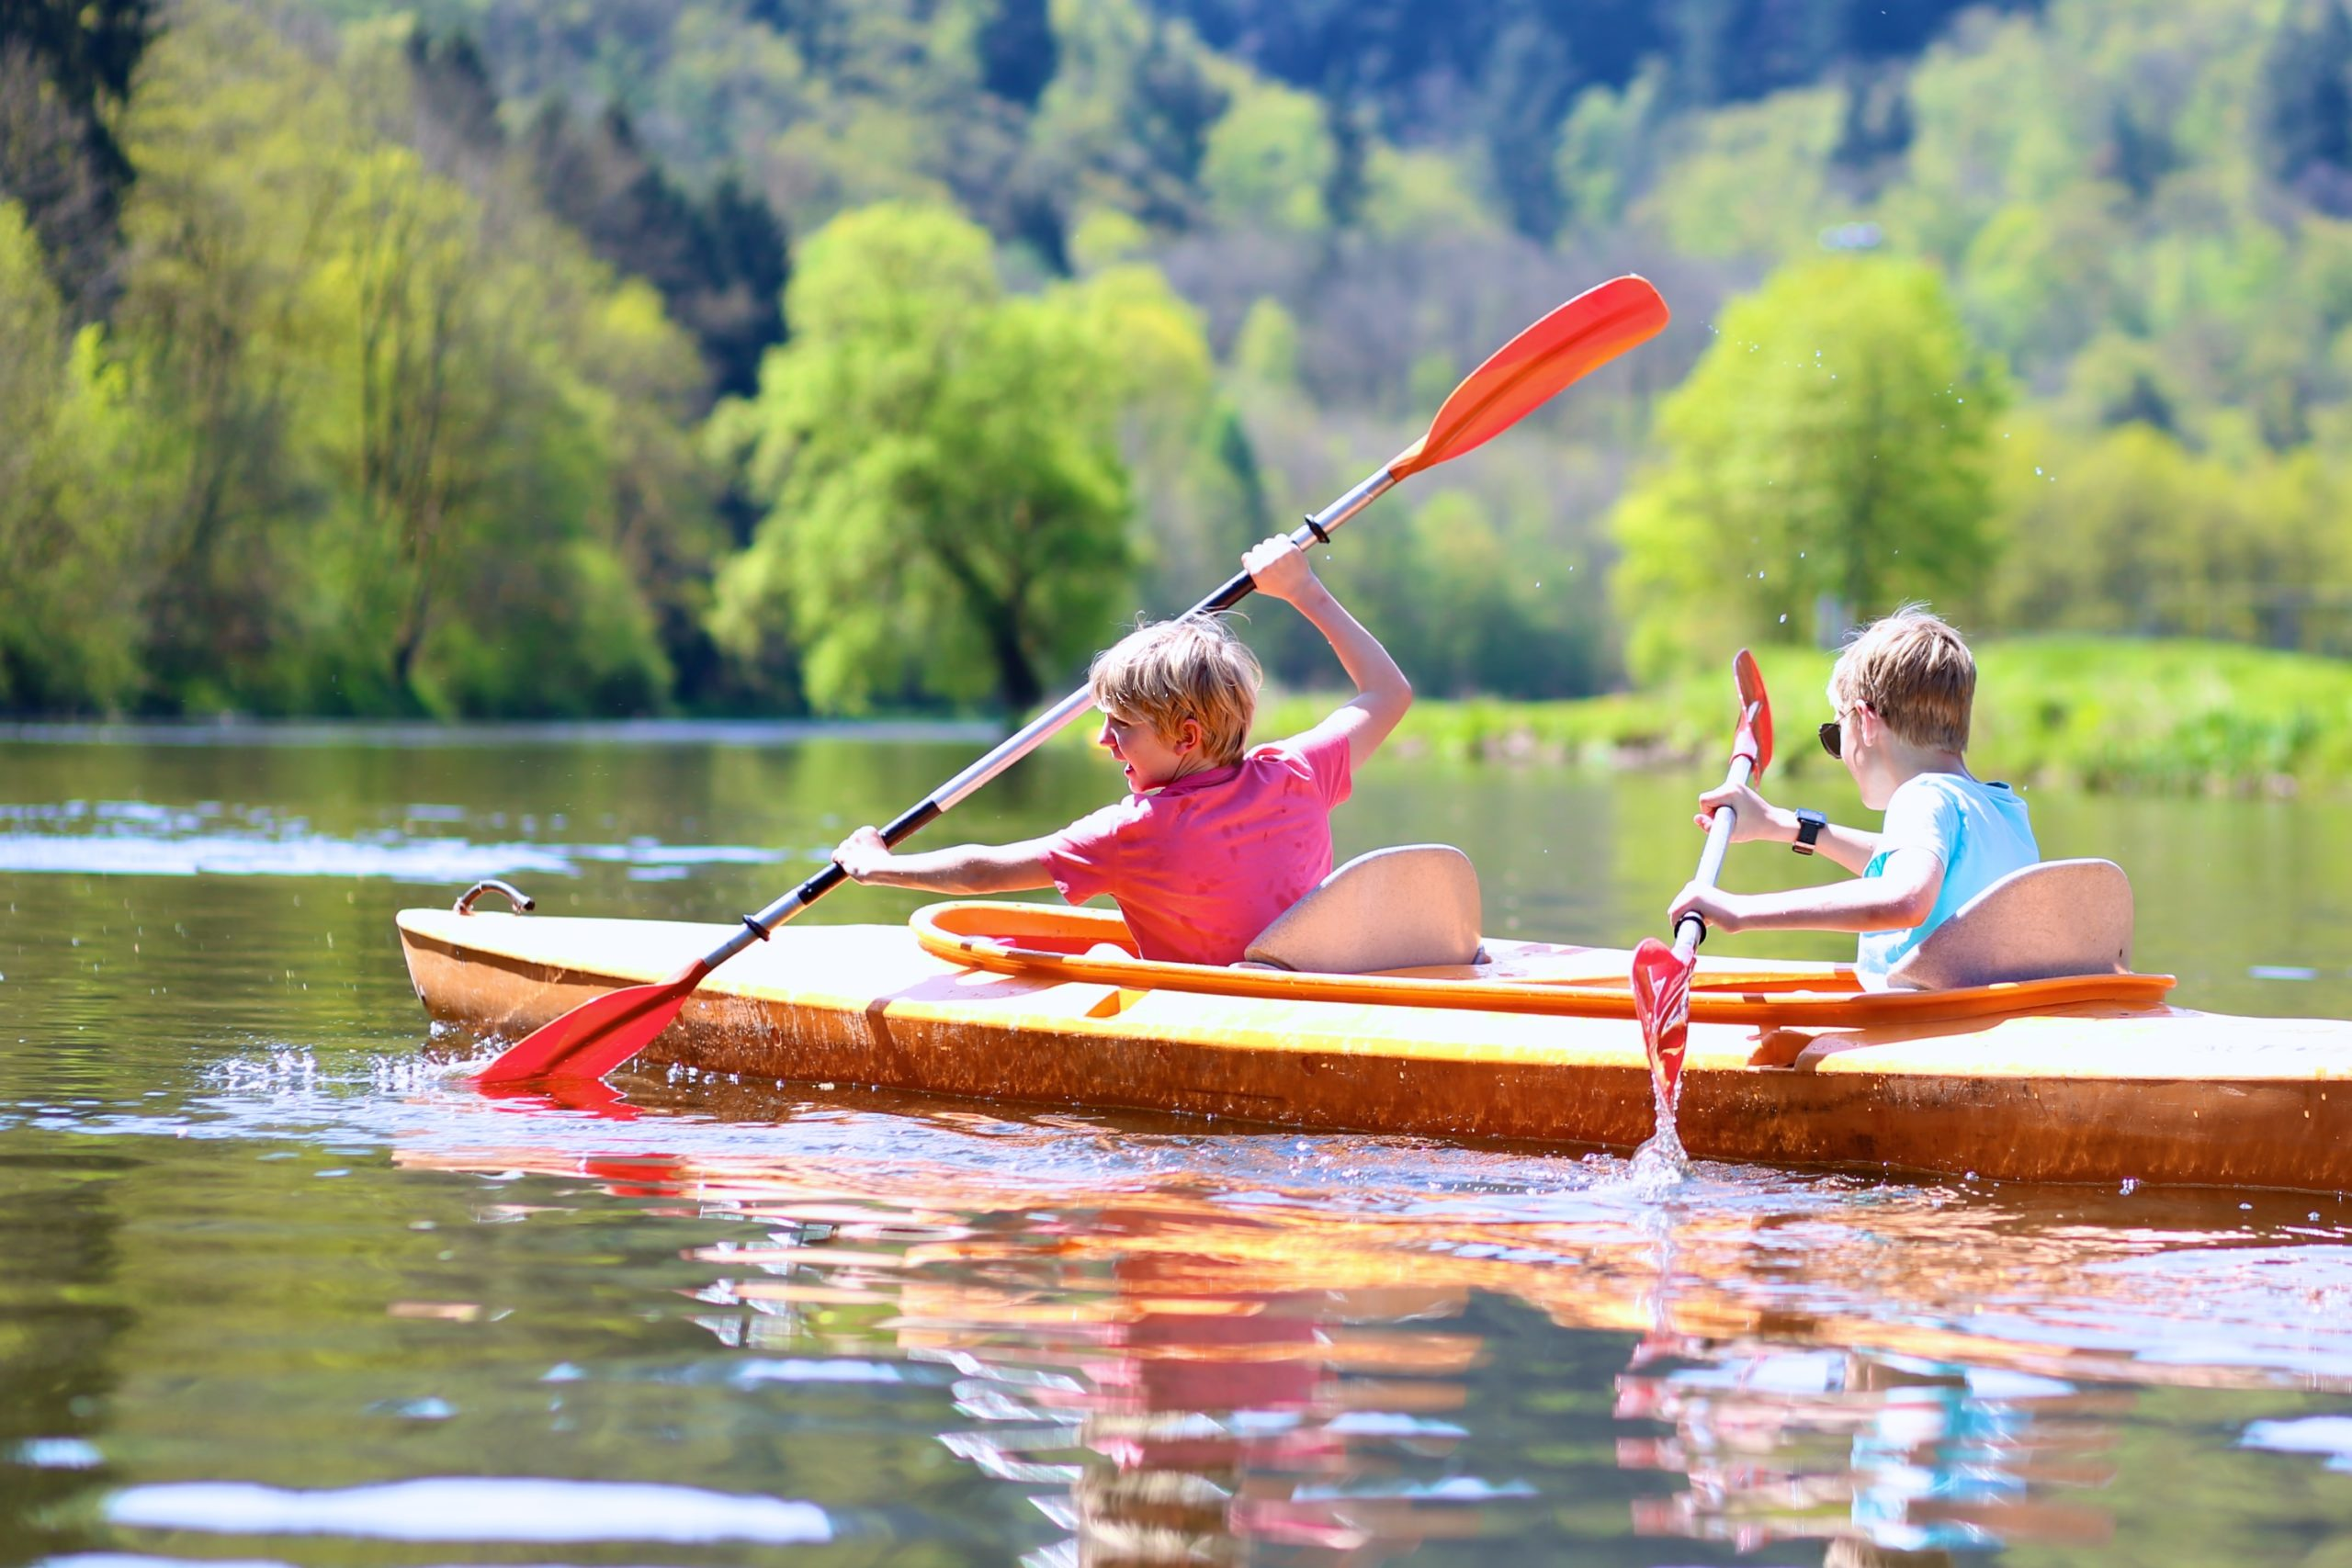 Two Boys Paddling in a Kayak on a Lake